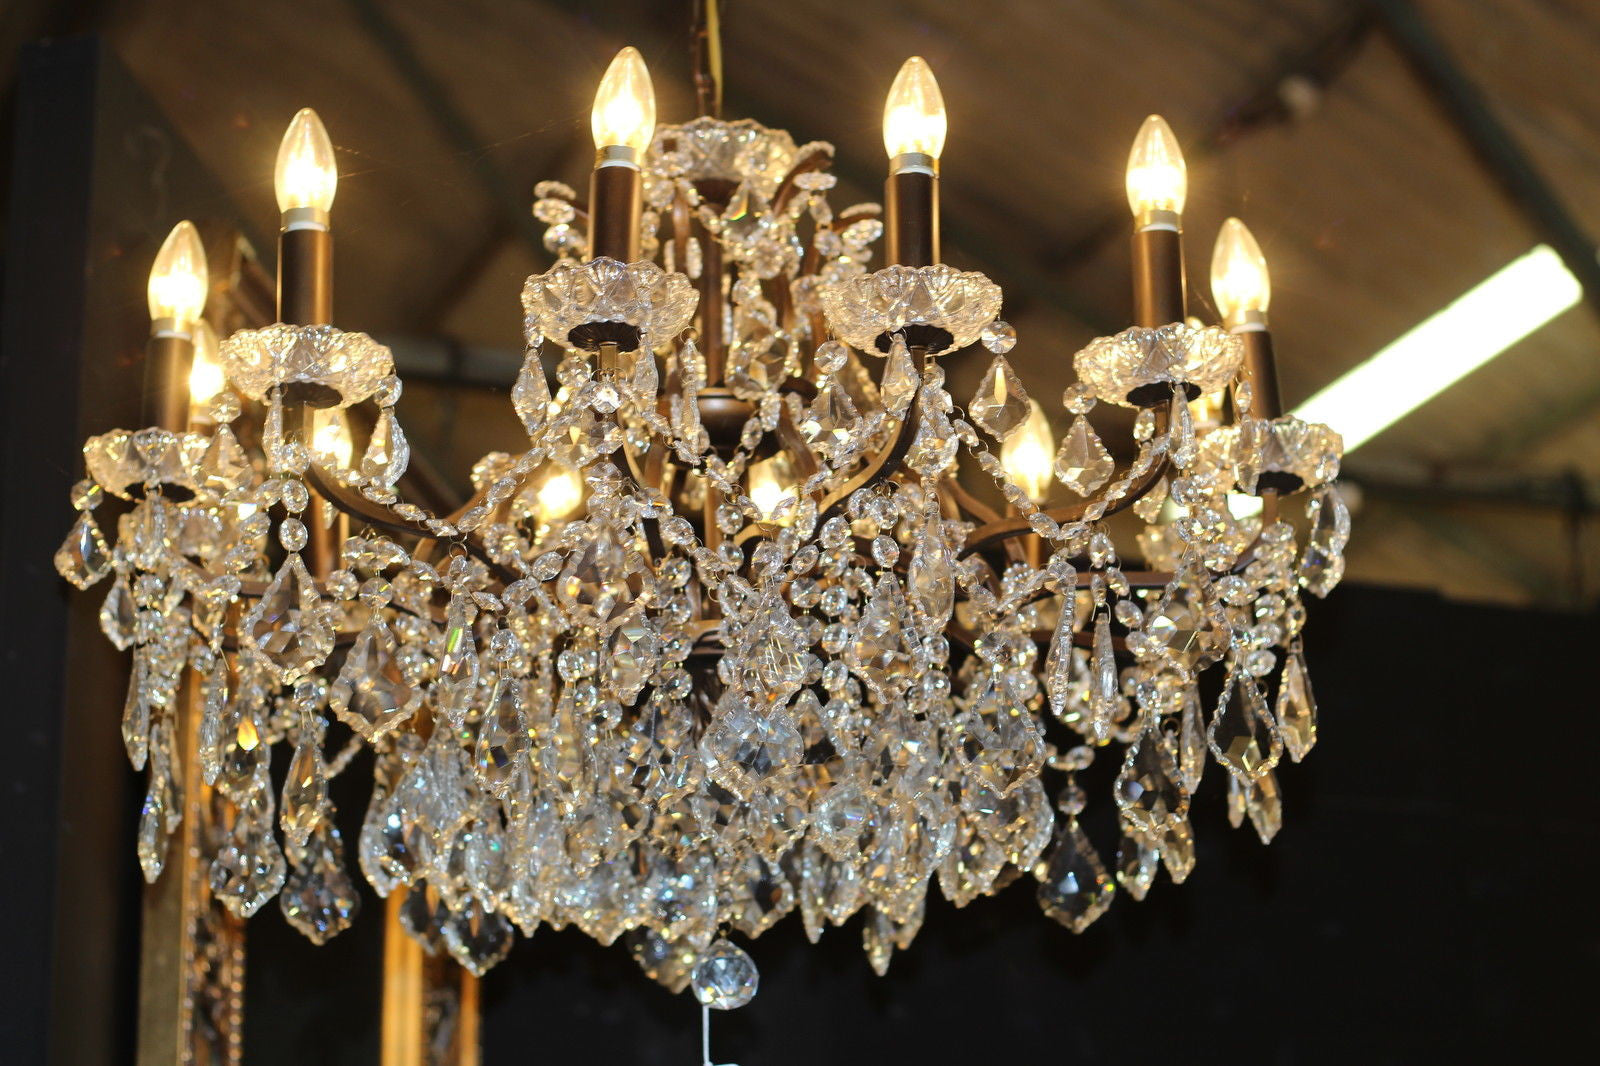 Ladonna 12 branch large shallow crystal glass chandelier with 12 branch large shallow crystal glass chandelier with antique bronze frame aloadofball Choice Image